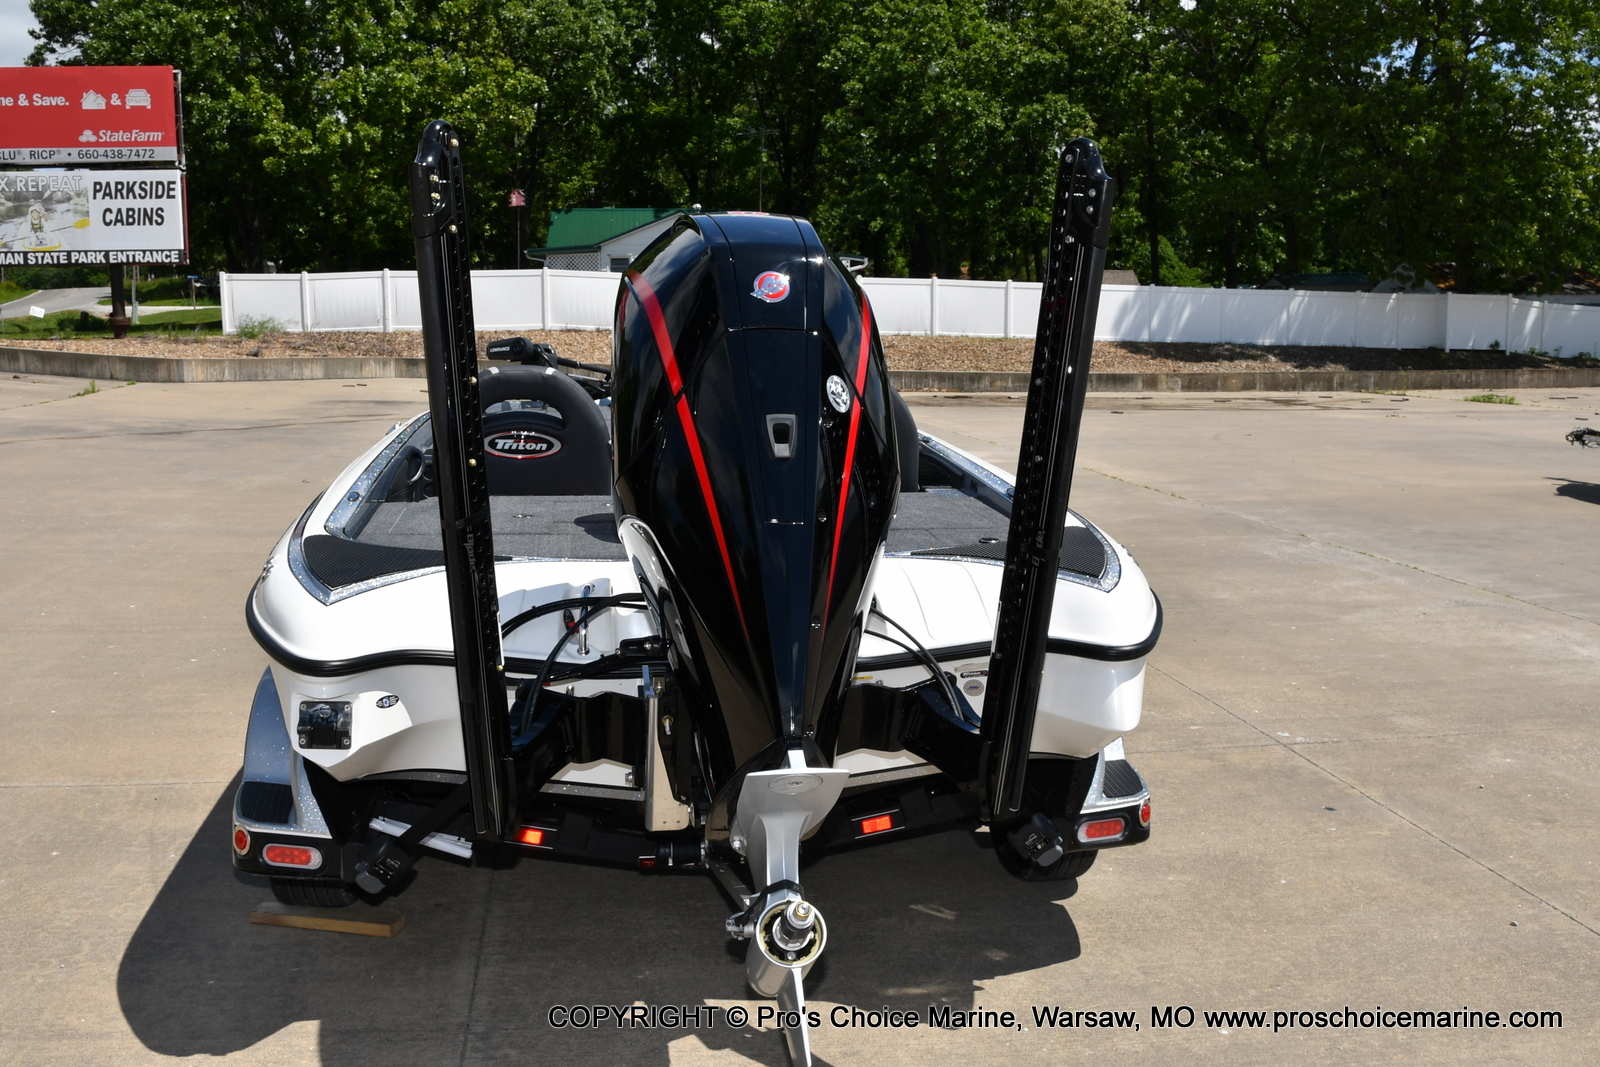 2021 Triton boat for sale, model of the boat is 21 TRX Patriot & Image # 30 of 50